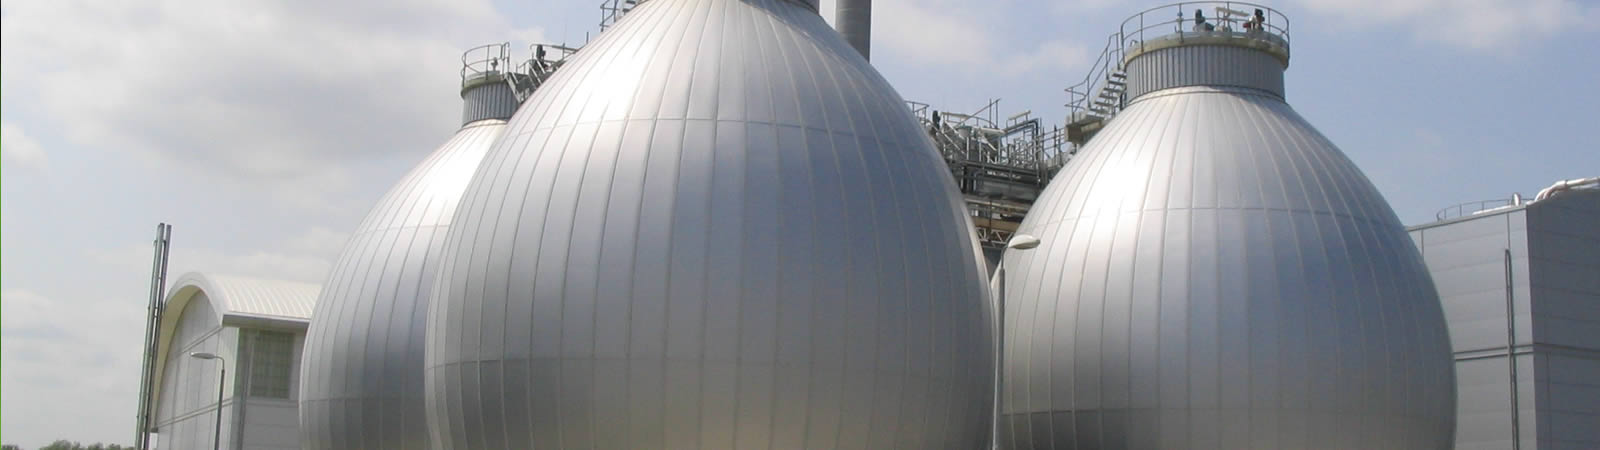 Agricultural Biogas | Biogas CHP and Cogeneration